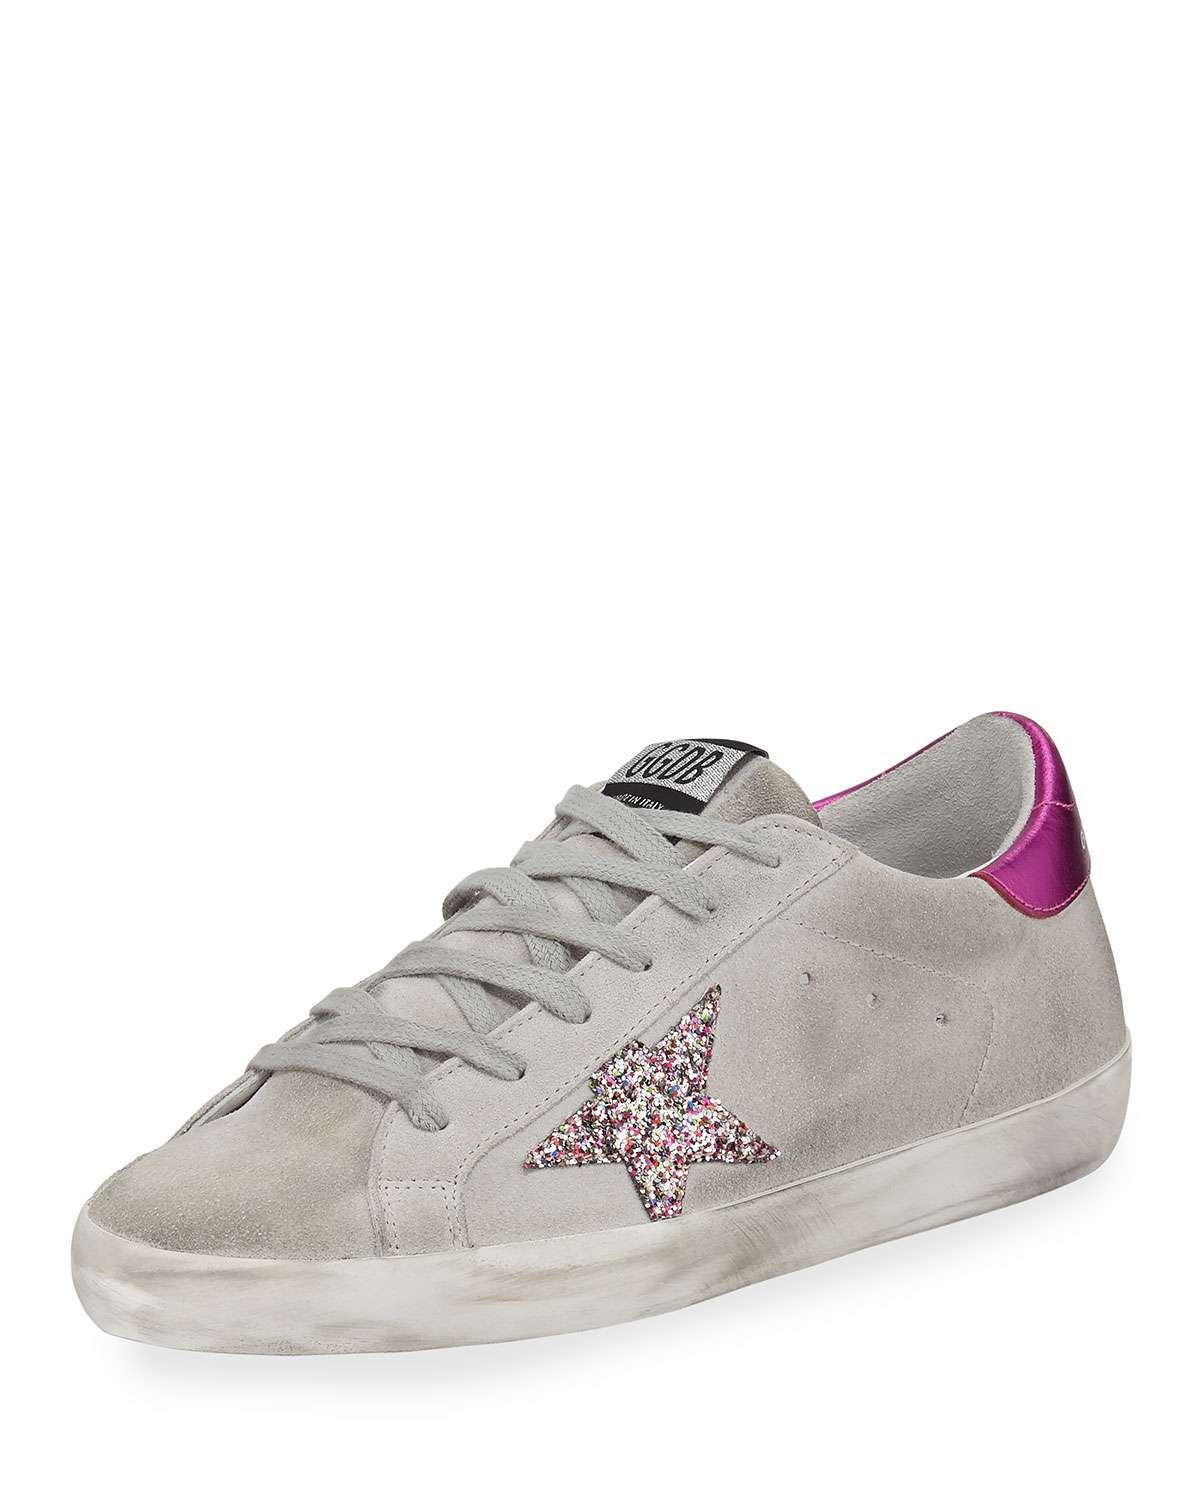 Superstar Suede & Glitter Sneakers